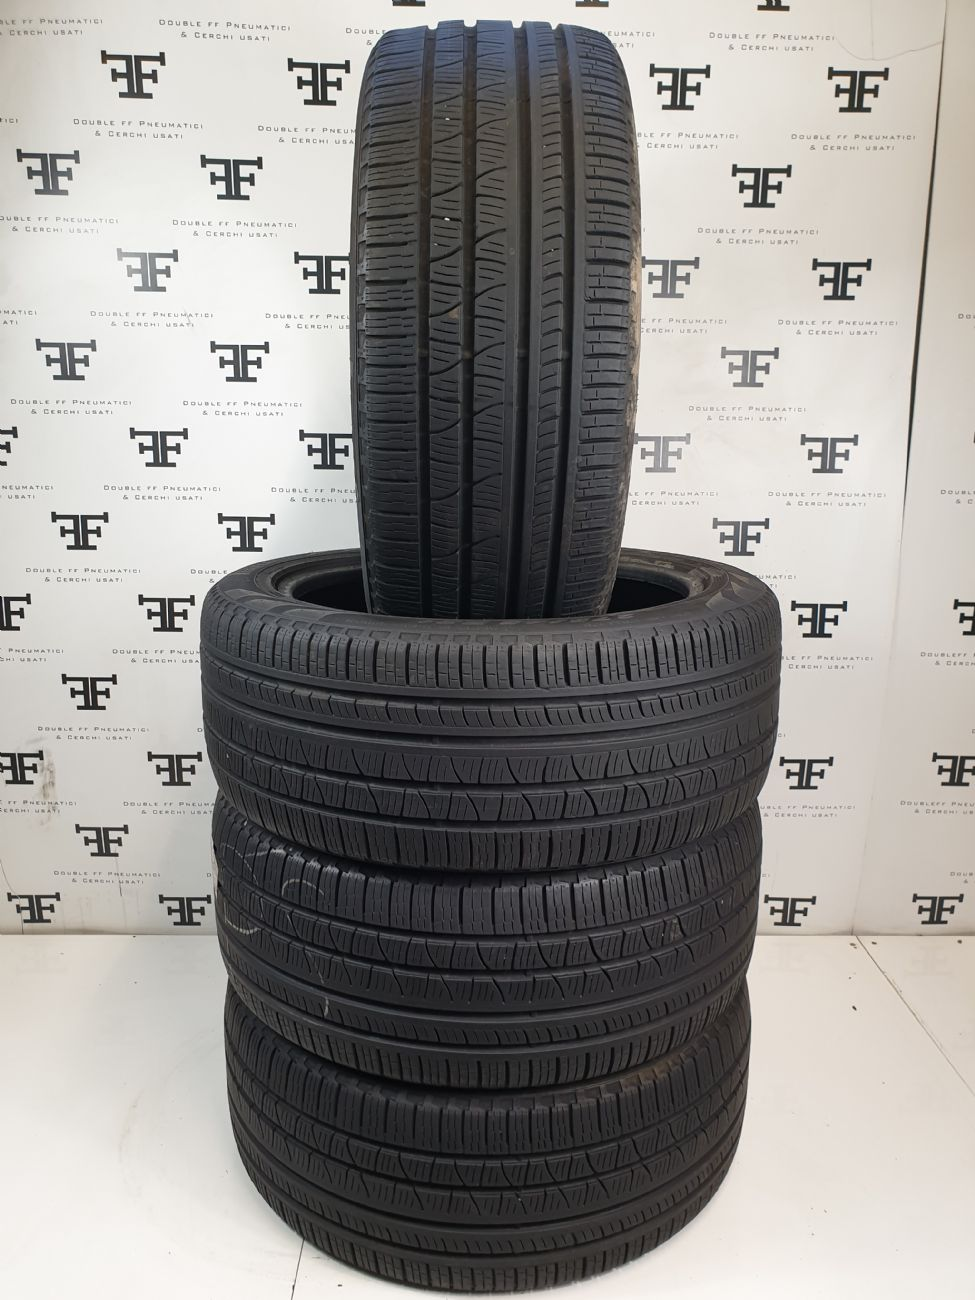 Pneumatici 275 45 R21 110 Y PIRELLI SCORPION VERDE ALL SEASON 4 seasons usati 350€